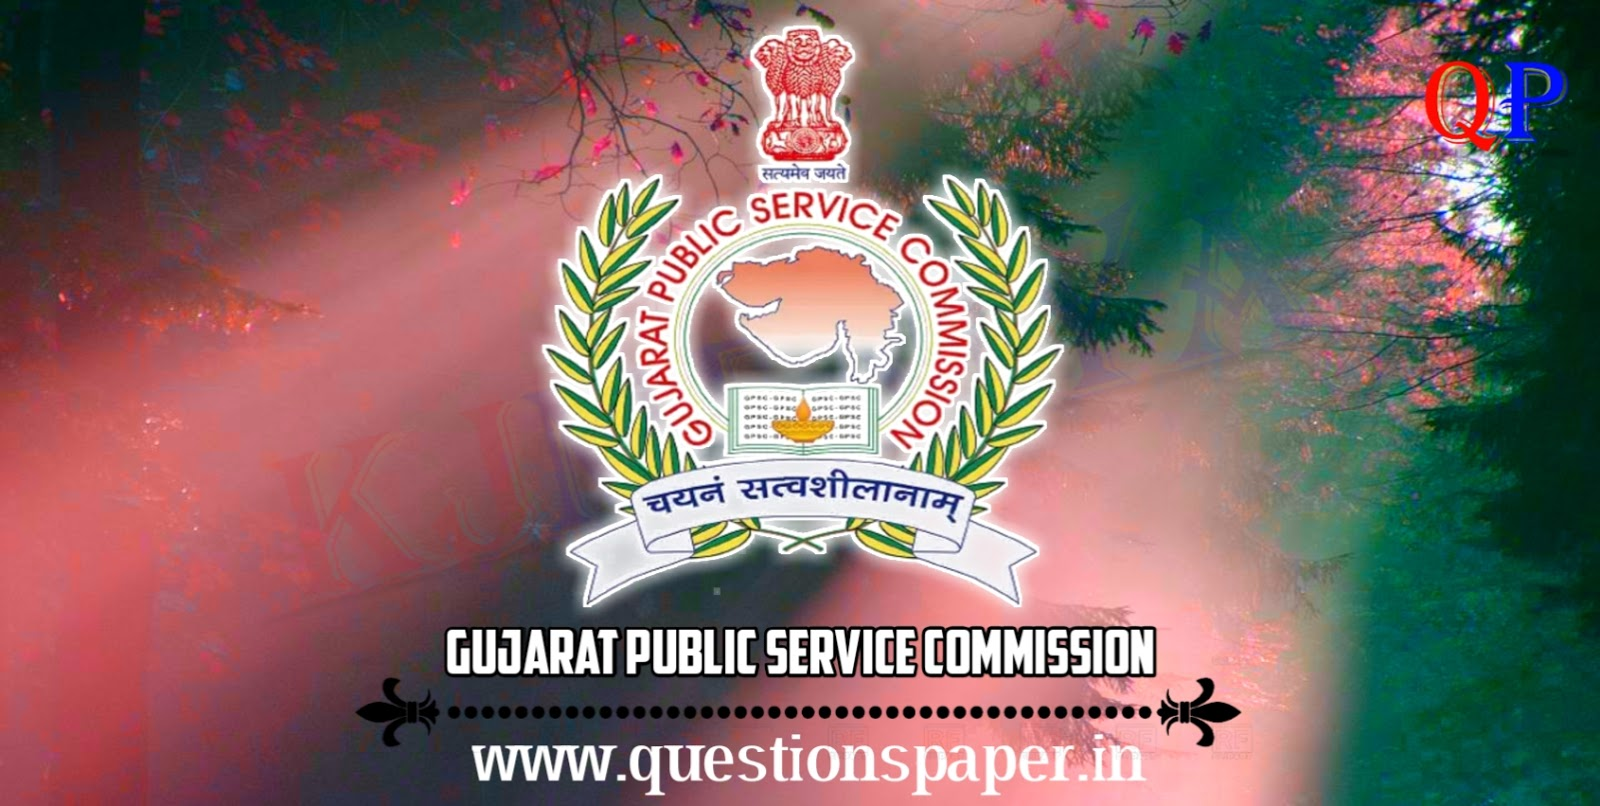 GPSC Research Officer Class – 2 (Advt.no.: 51/2018-19) (23-06-2019)